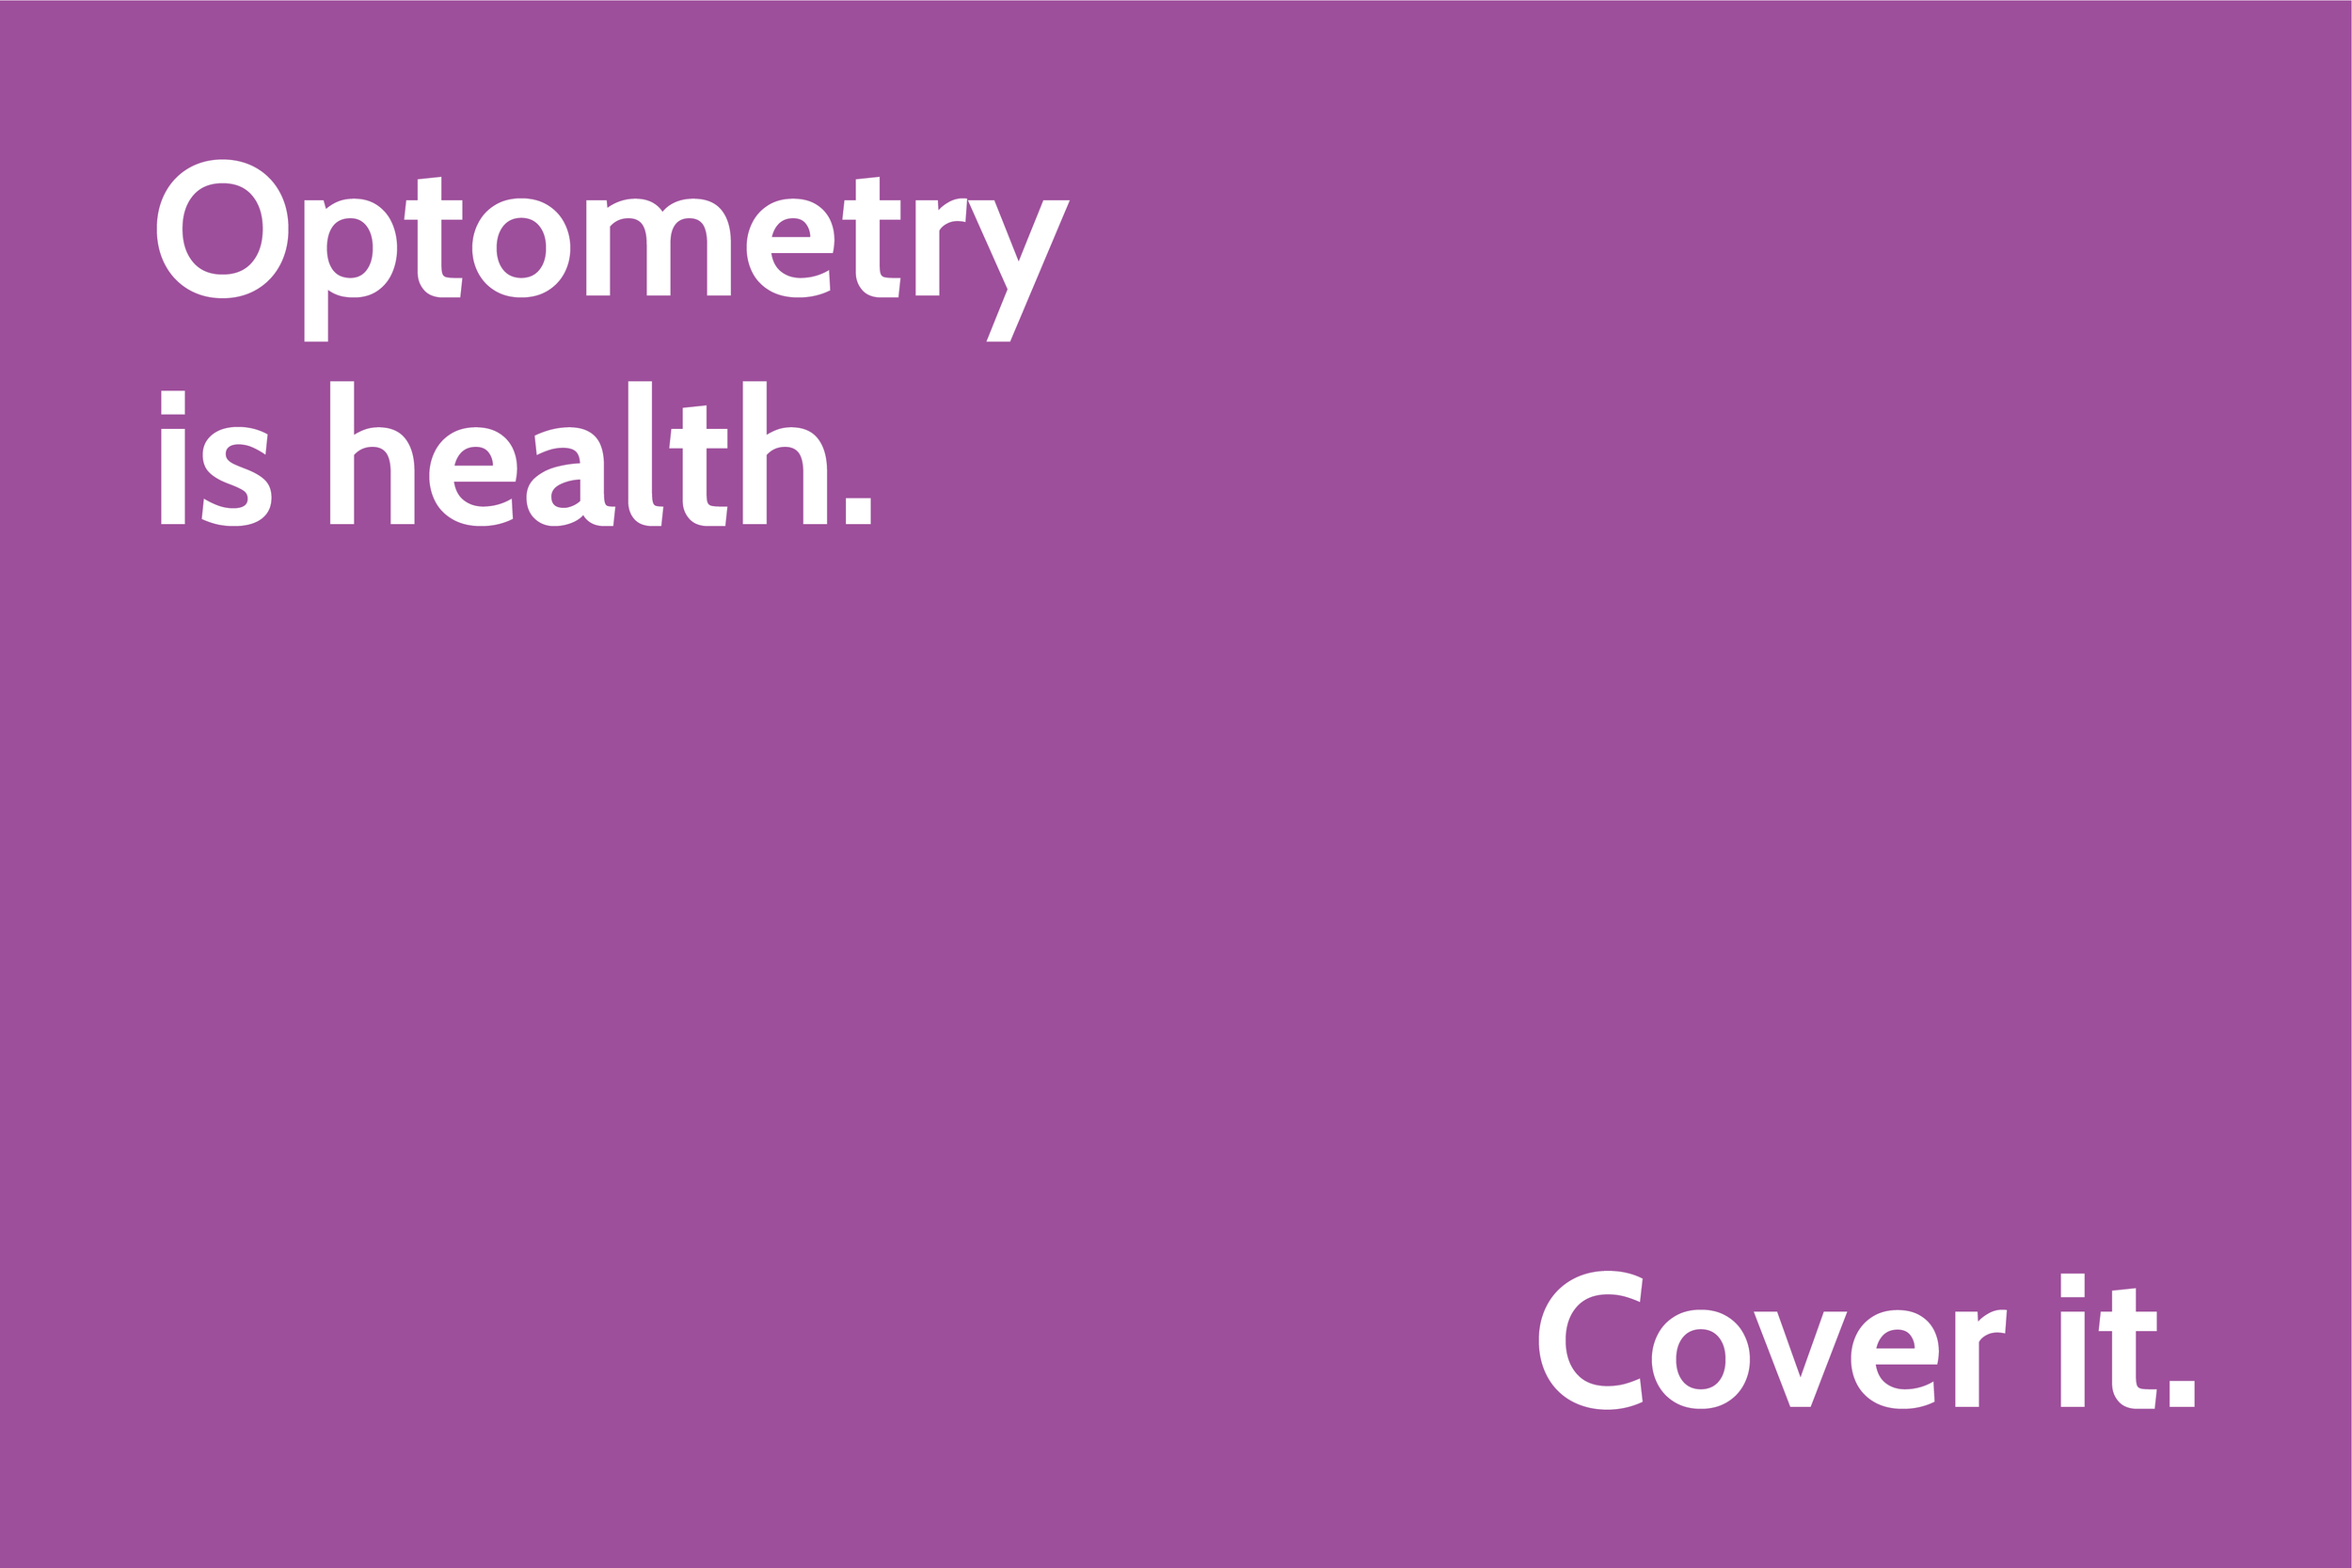 Optometry is health. Cover it.png